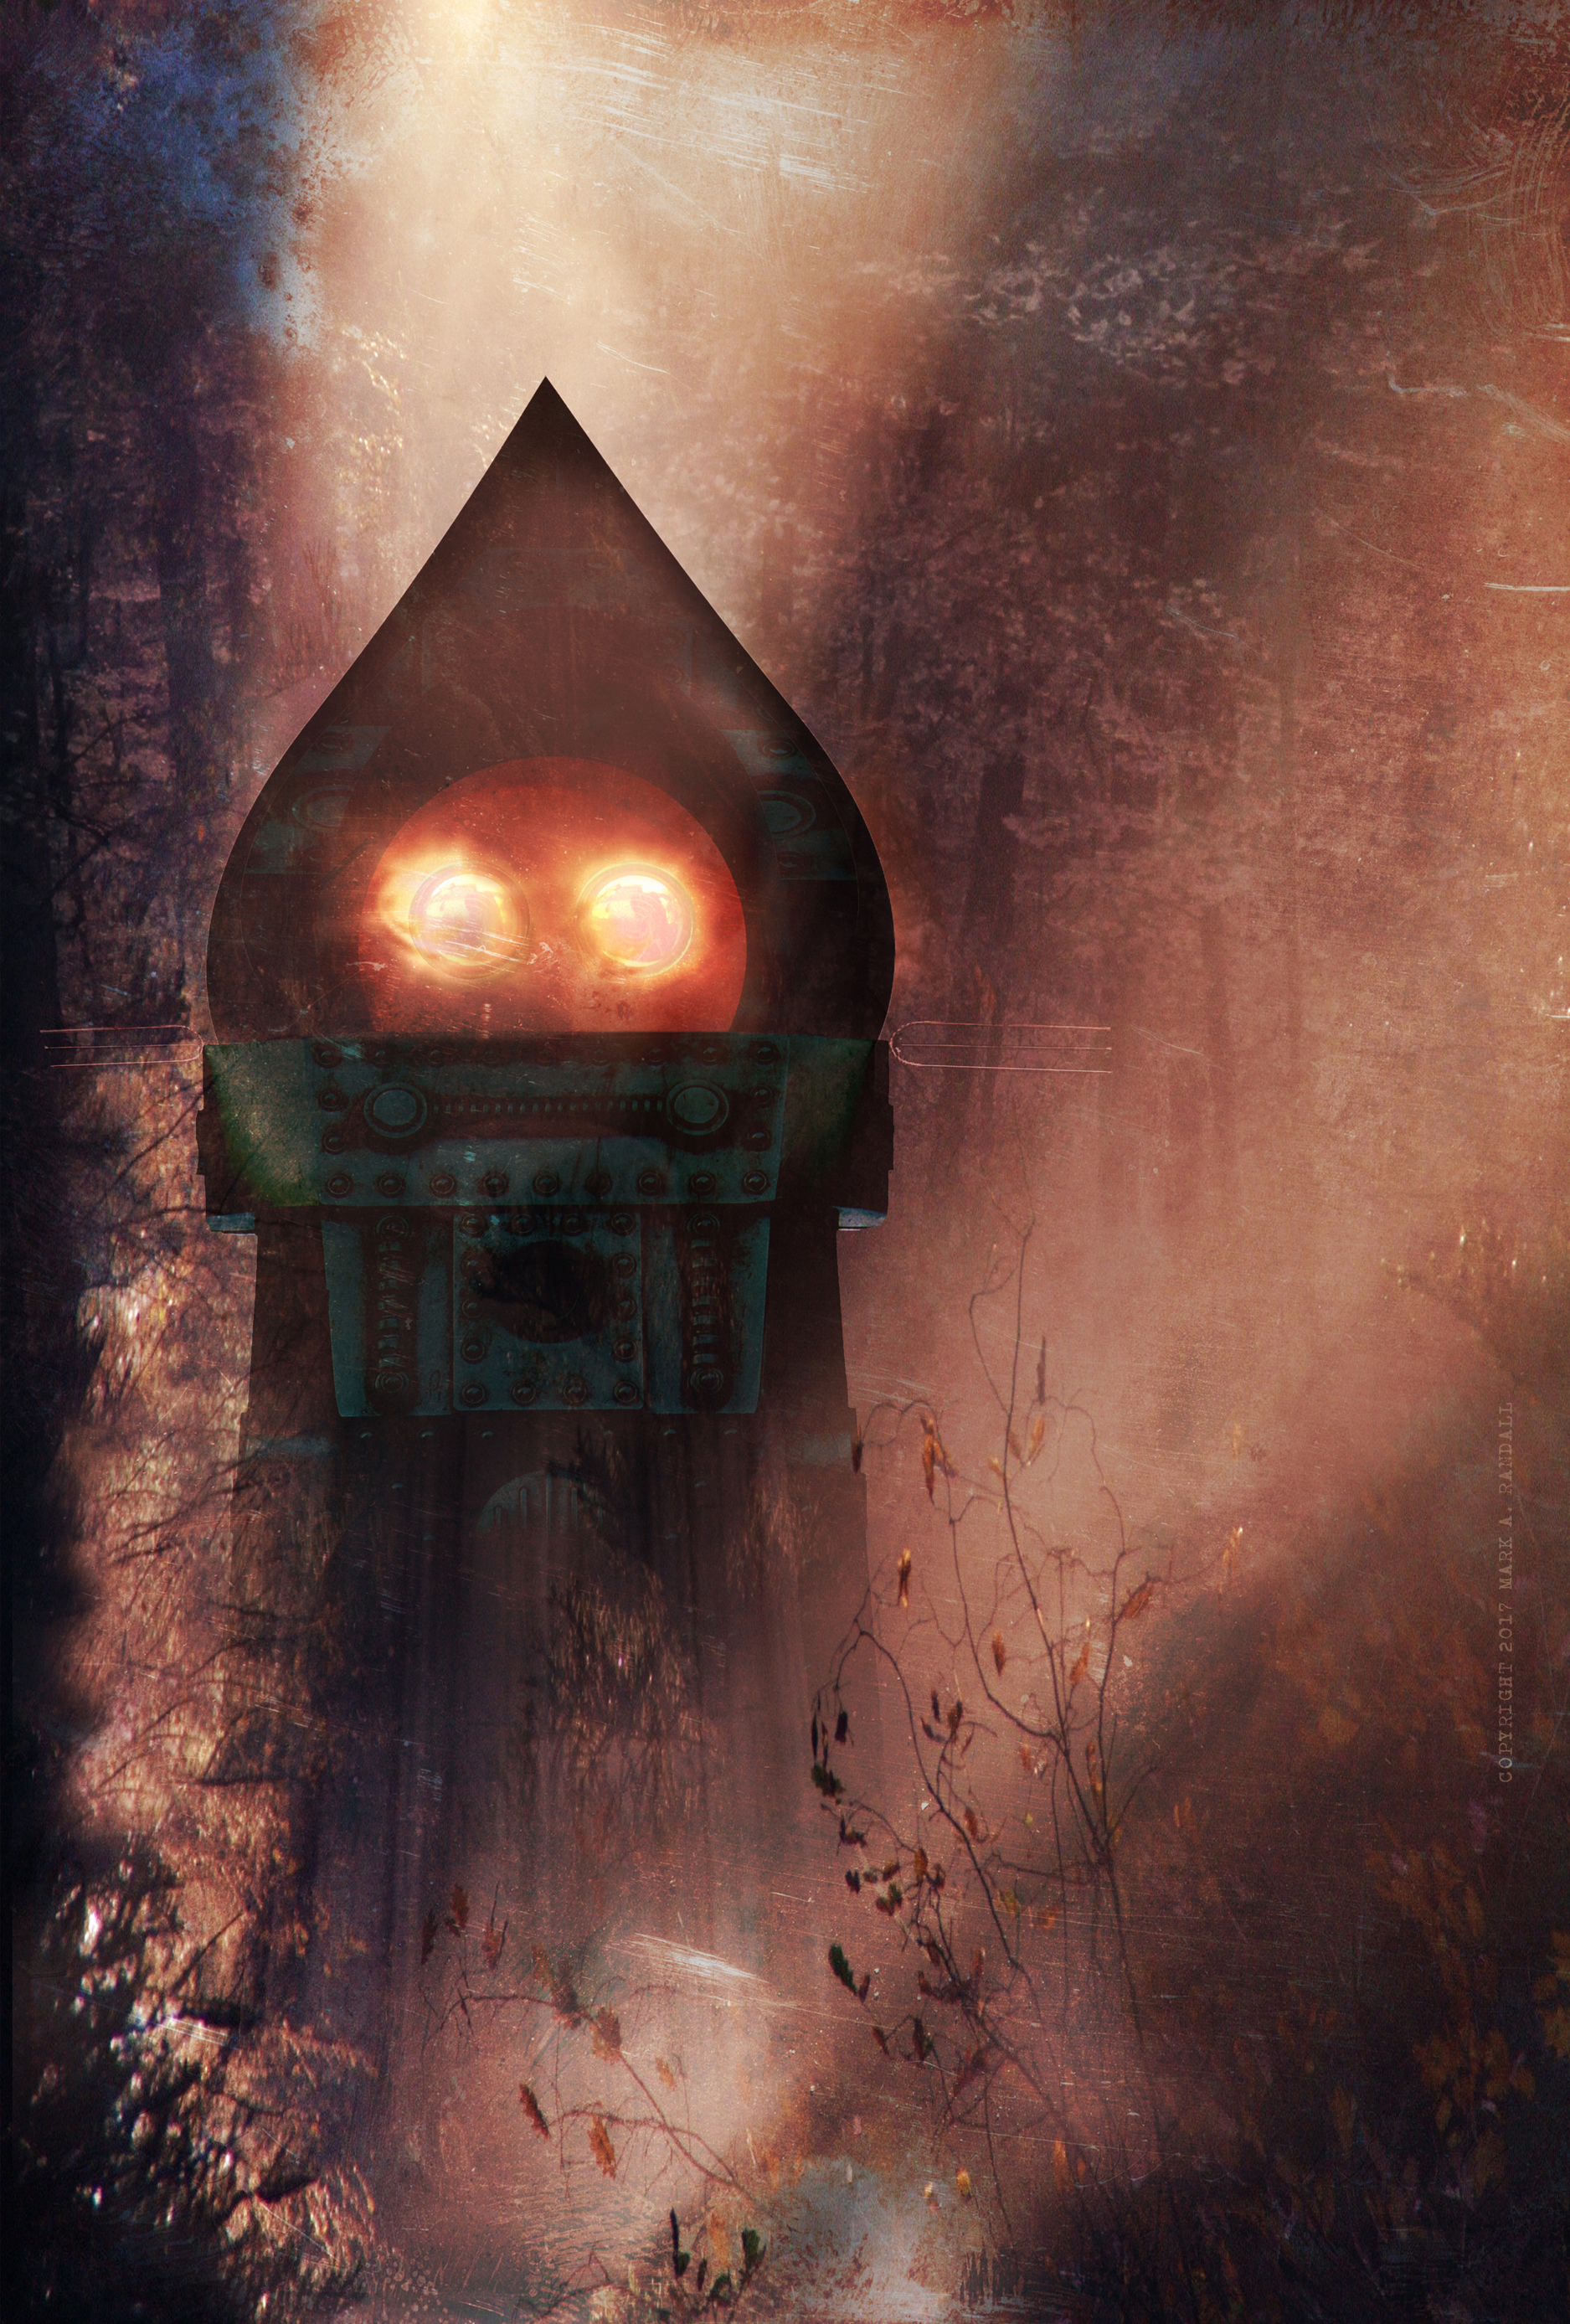 2018 mark randall flatwoods monster.jpg